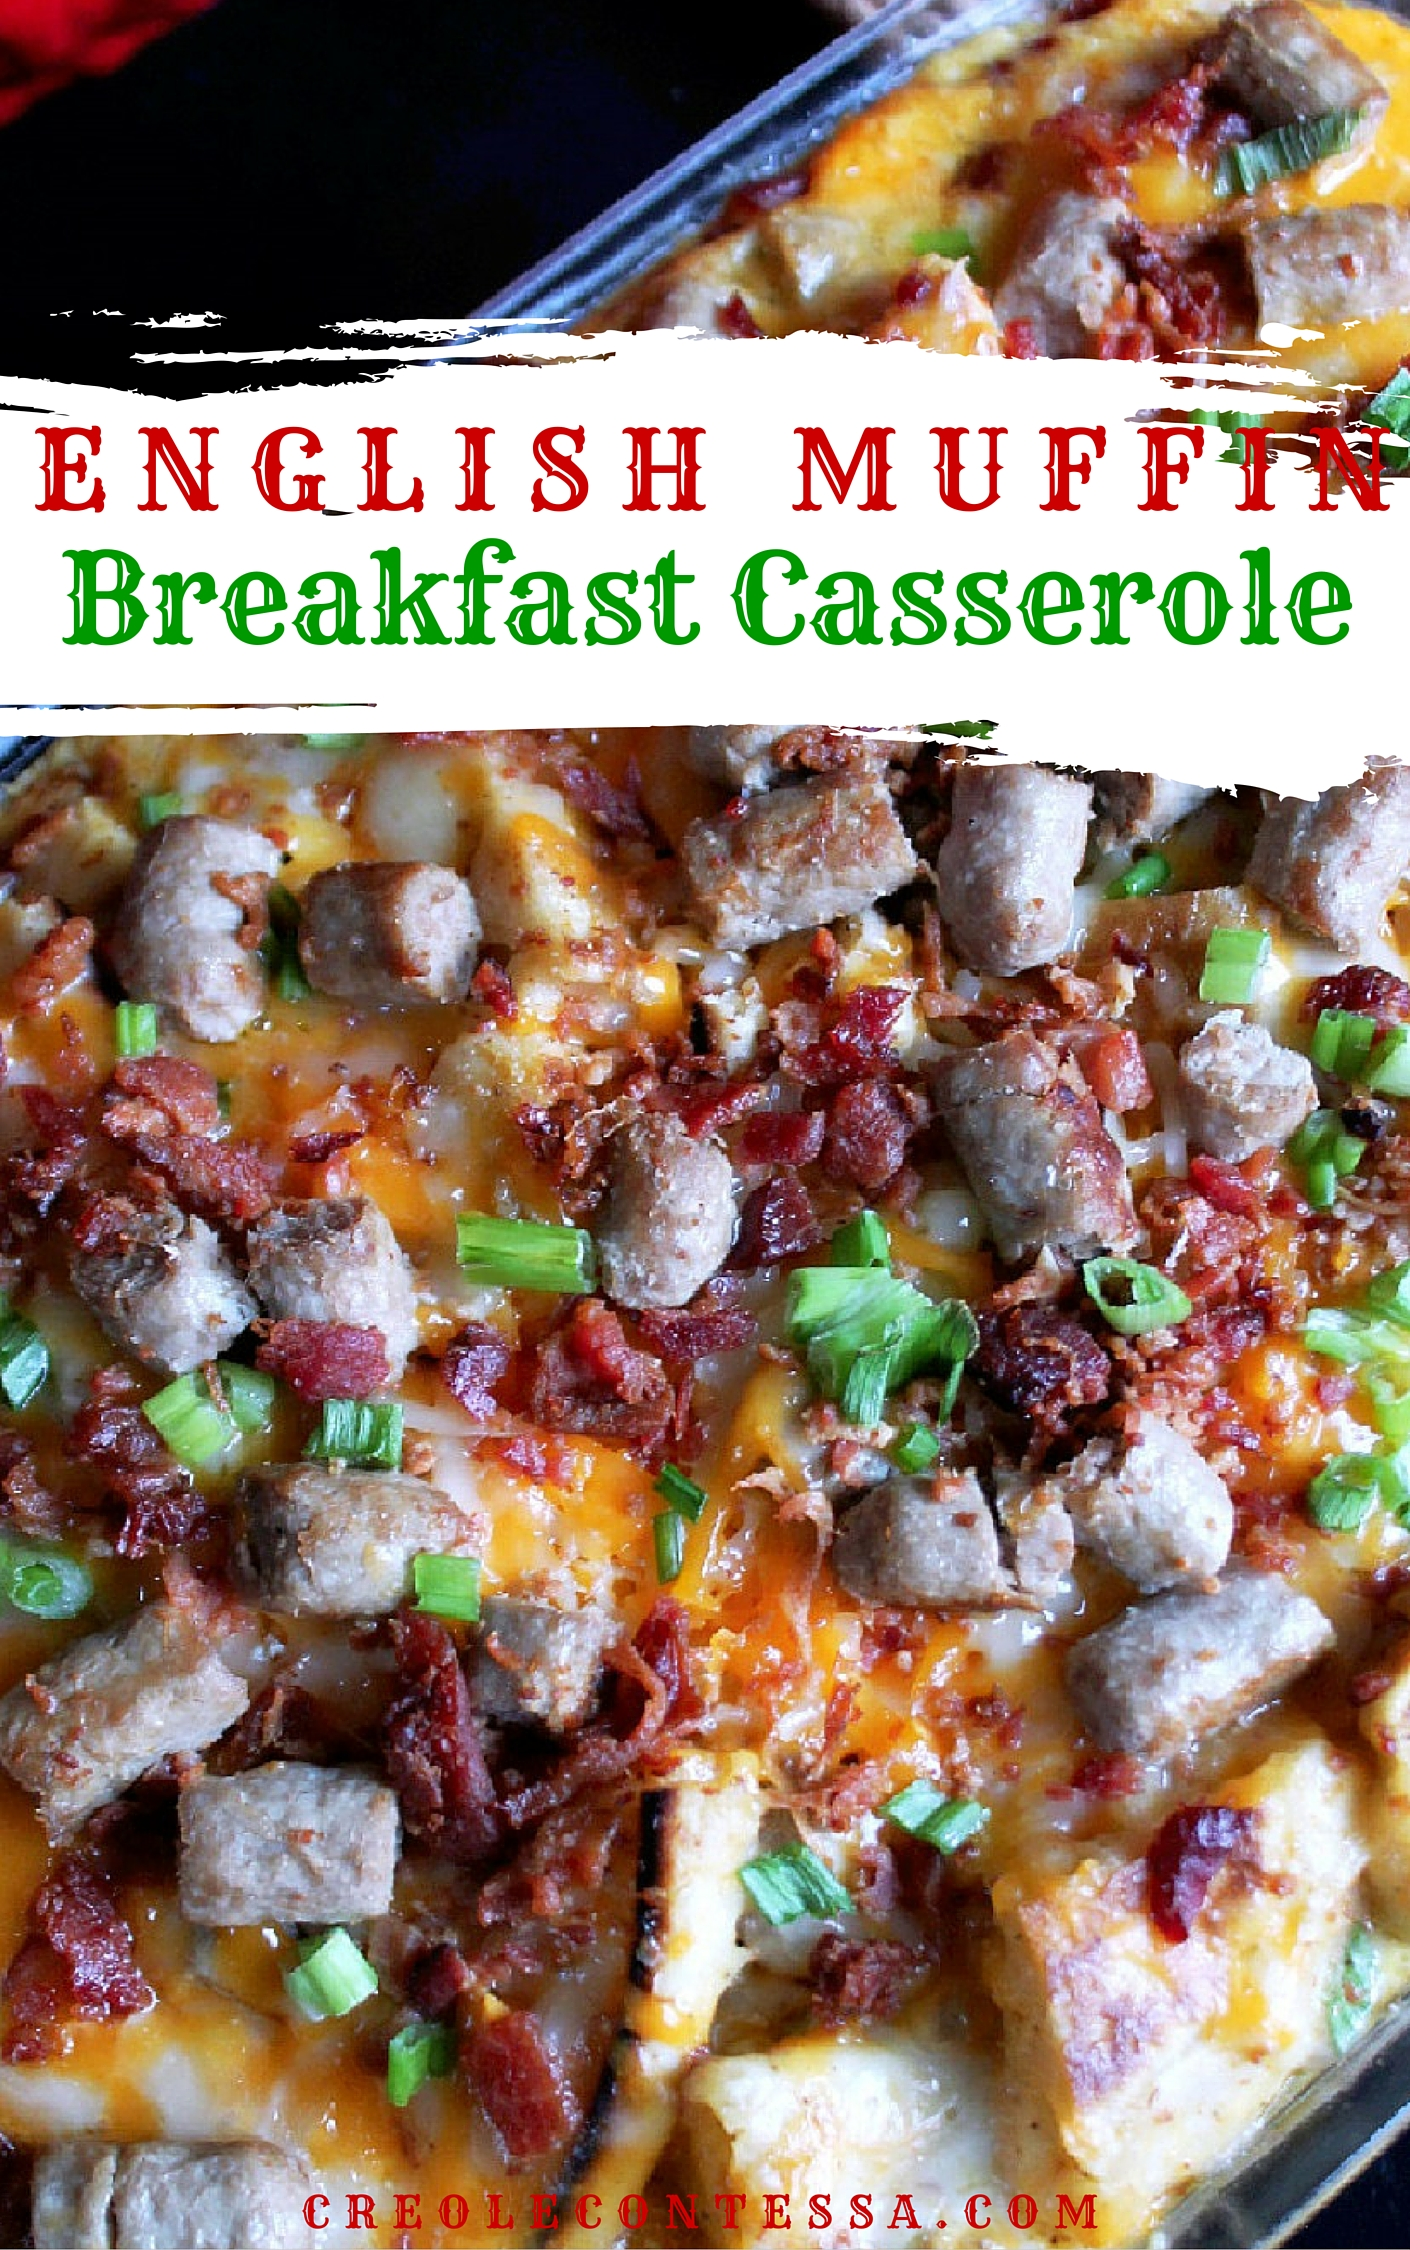 English Muffin Breakfast Casserole-Creole Contessa